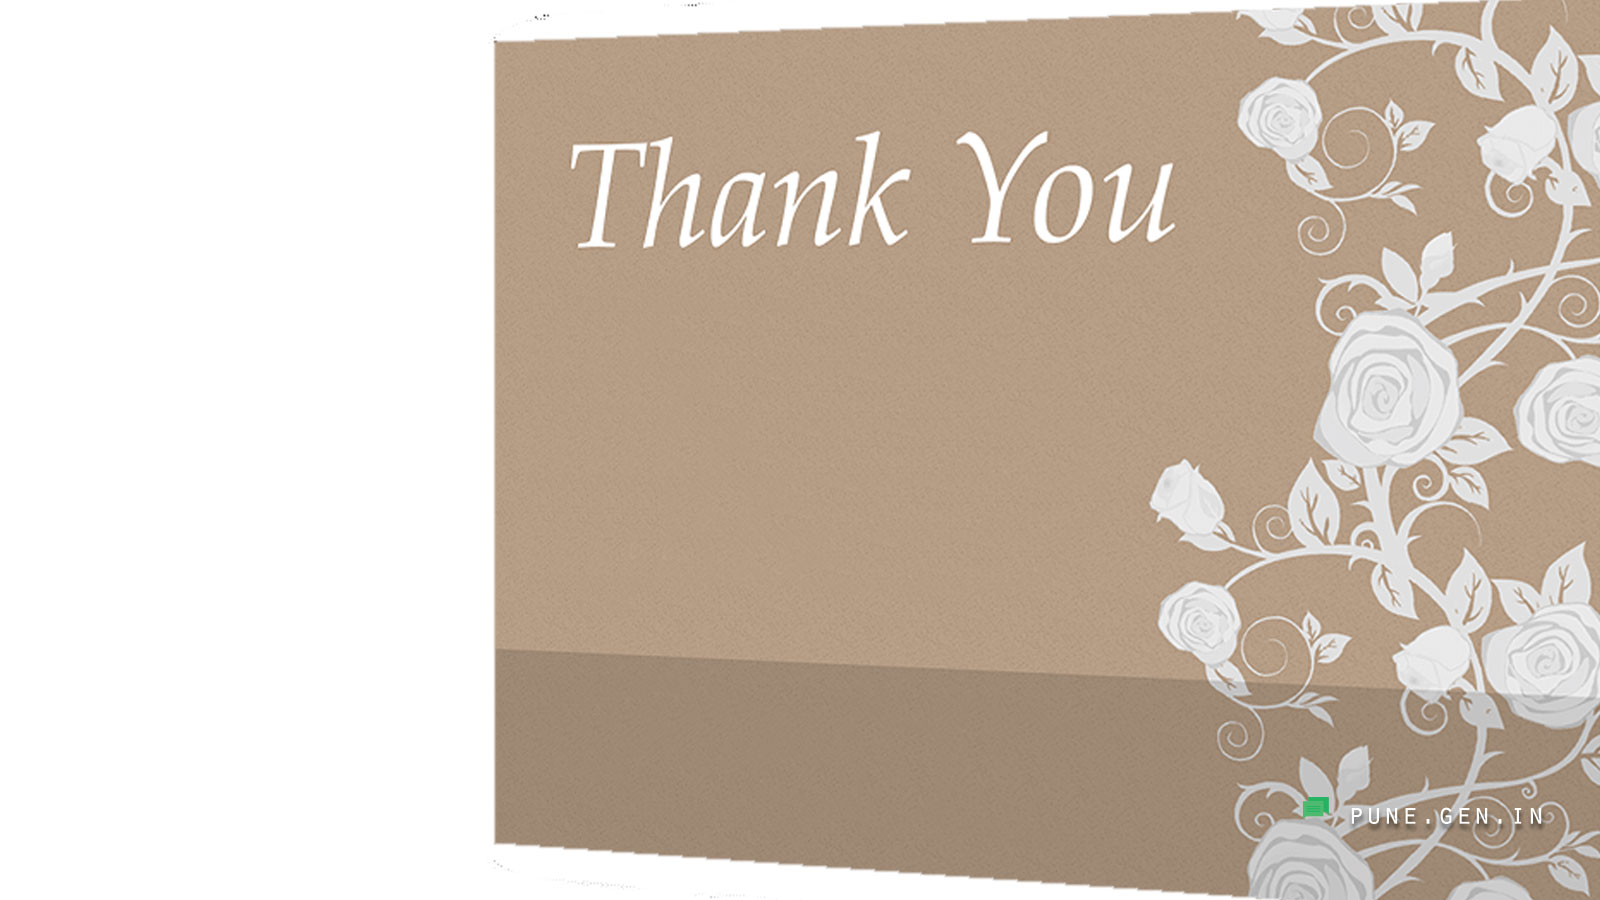 Thank You Messages for Baby Shower Gifts: Thank You Notes